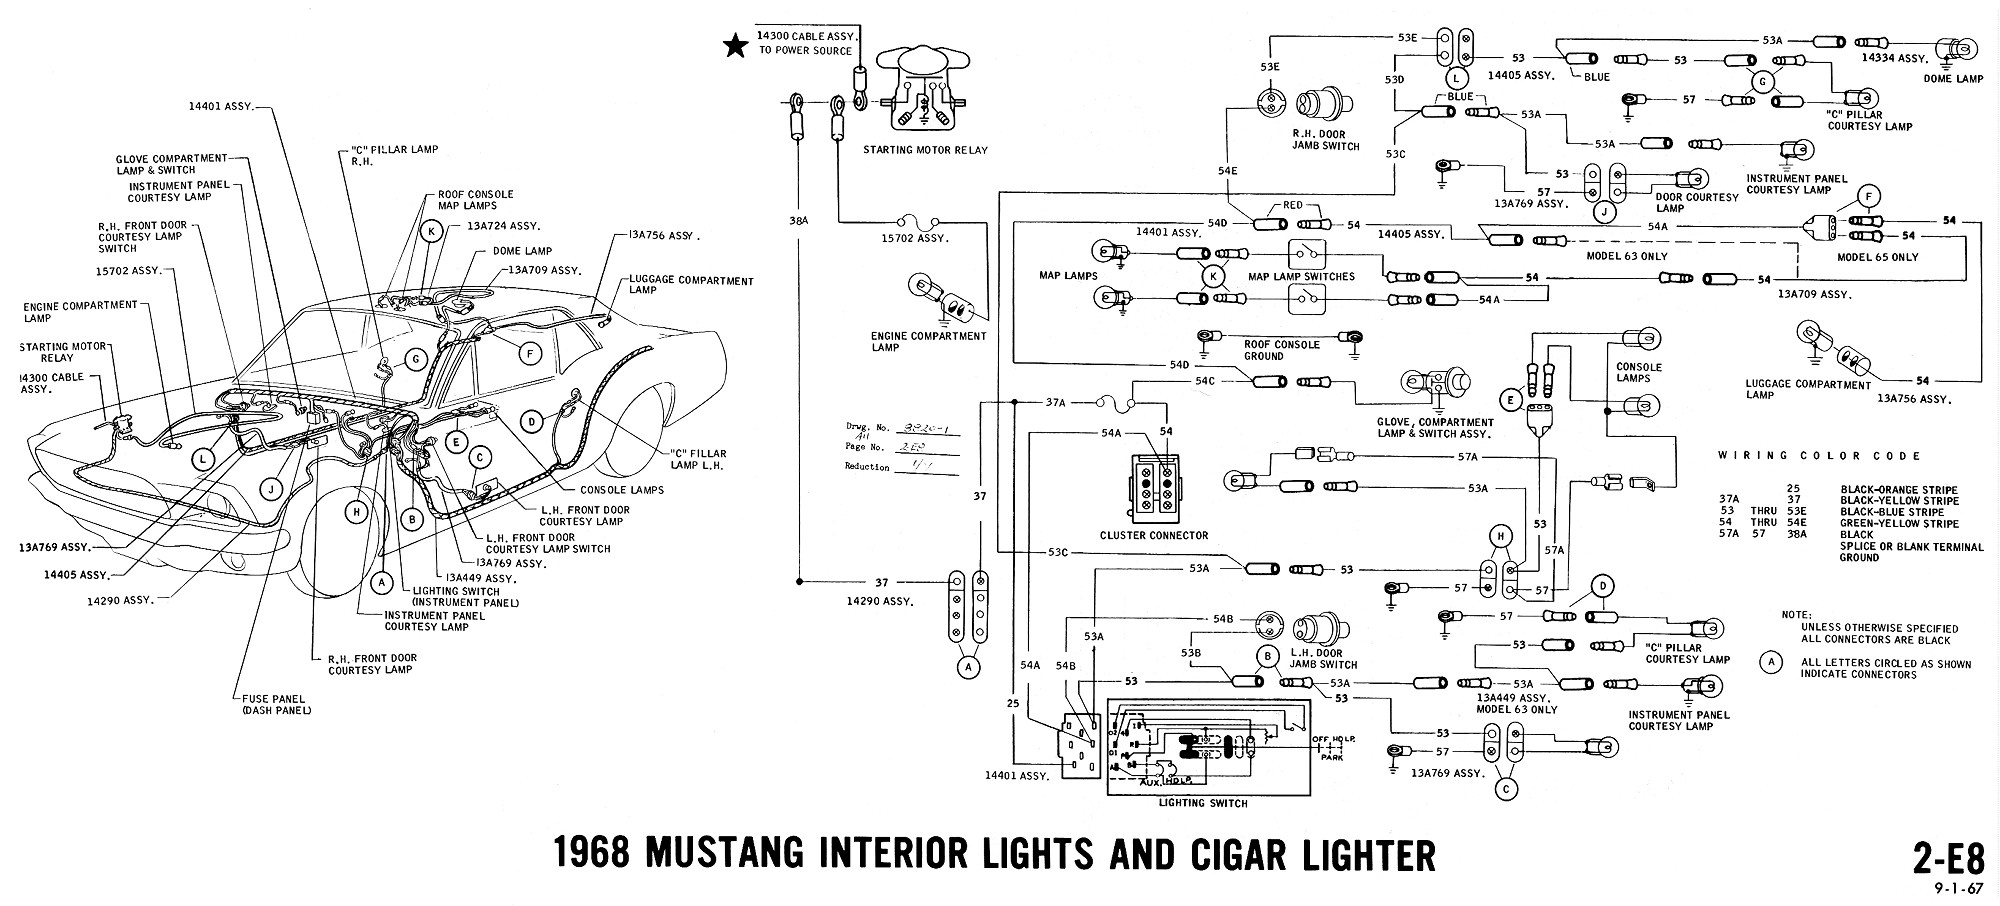 1968 mustang wiring diagram interior lights cigar lighter 1968 mustang wiring diagram 1966 mustang wiring diagrams \u2022 free 1967 mustang ignition wiring diagram at soozxer.org